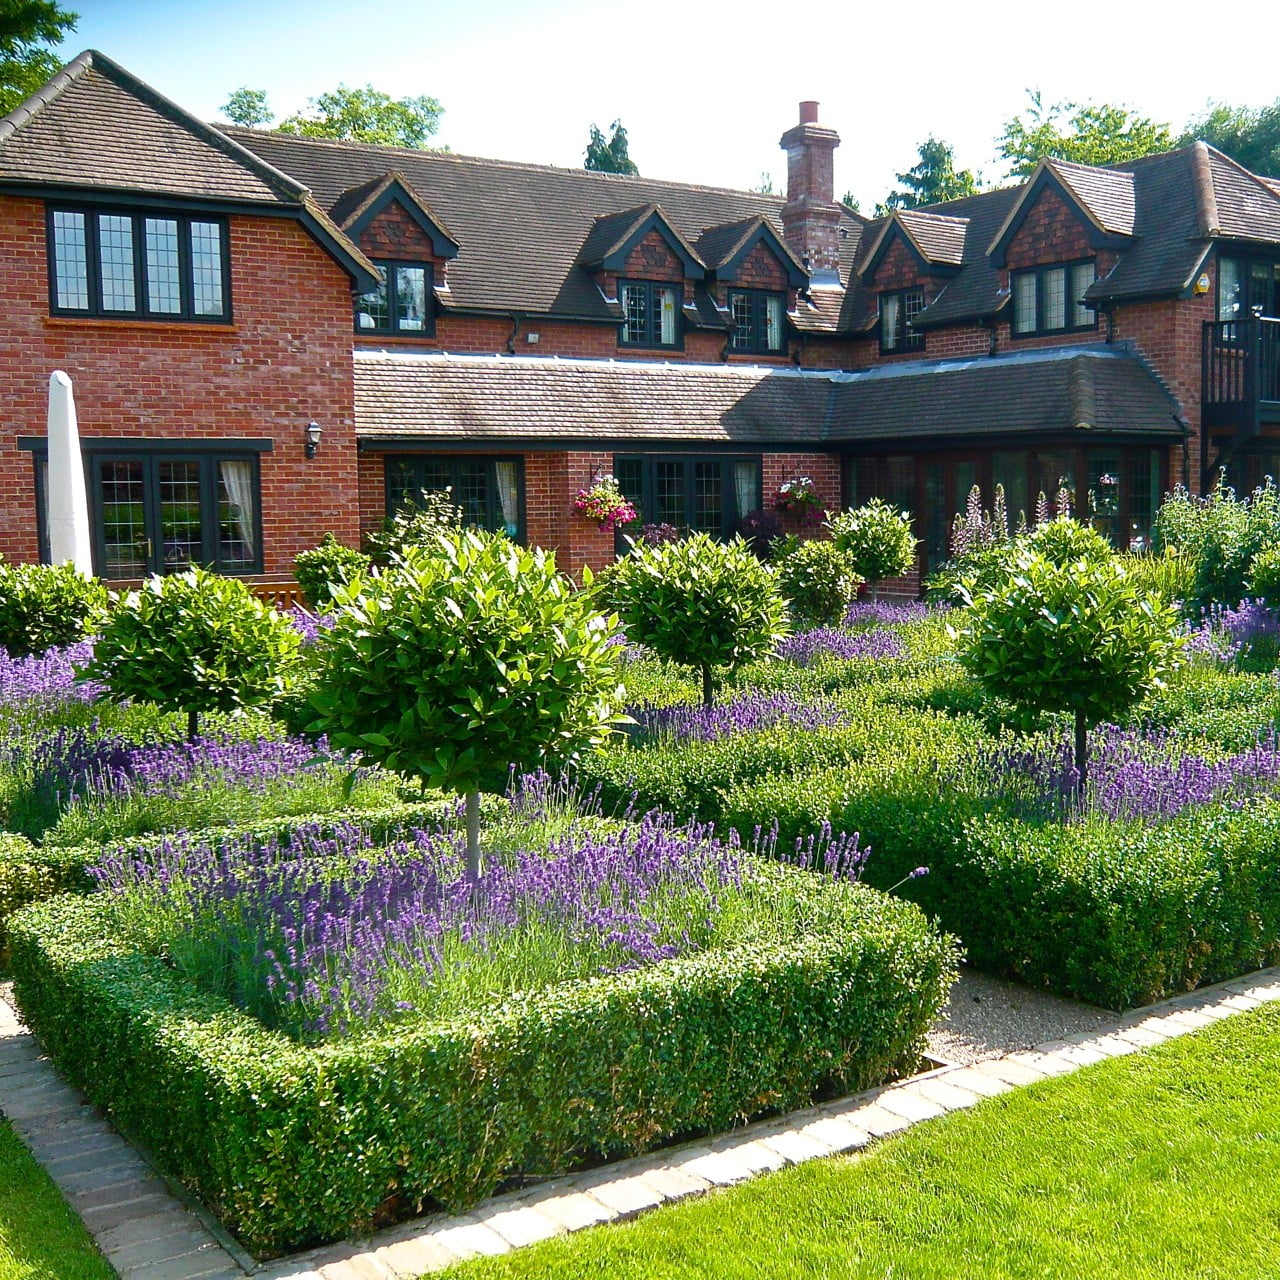 Large gardens estates jo alderson phillips for Designing a large garden from scratch